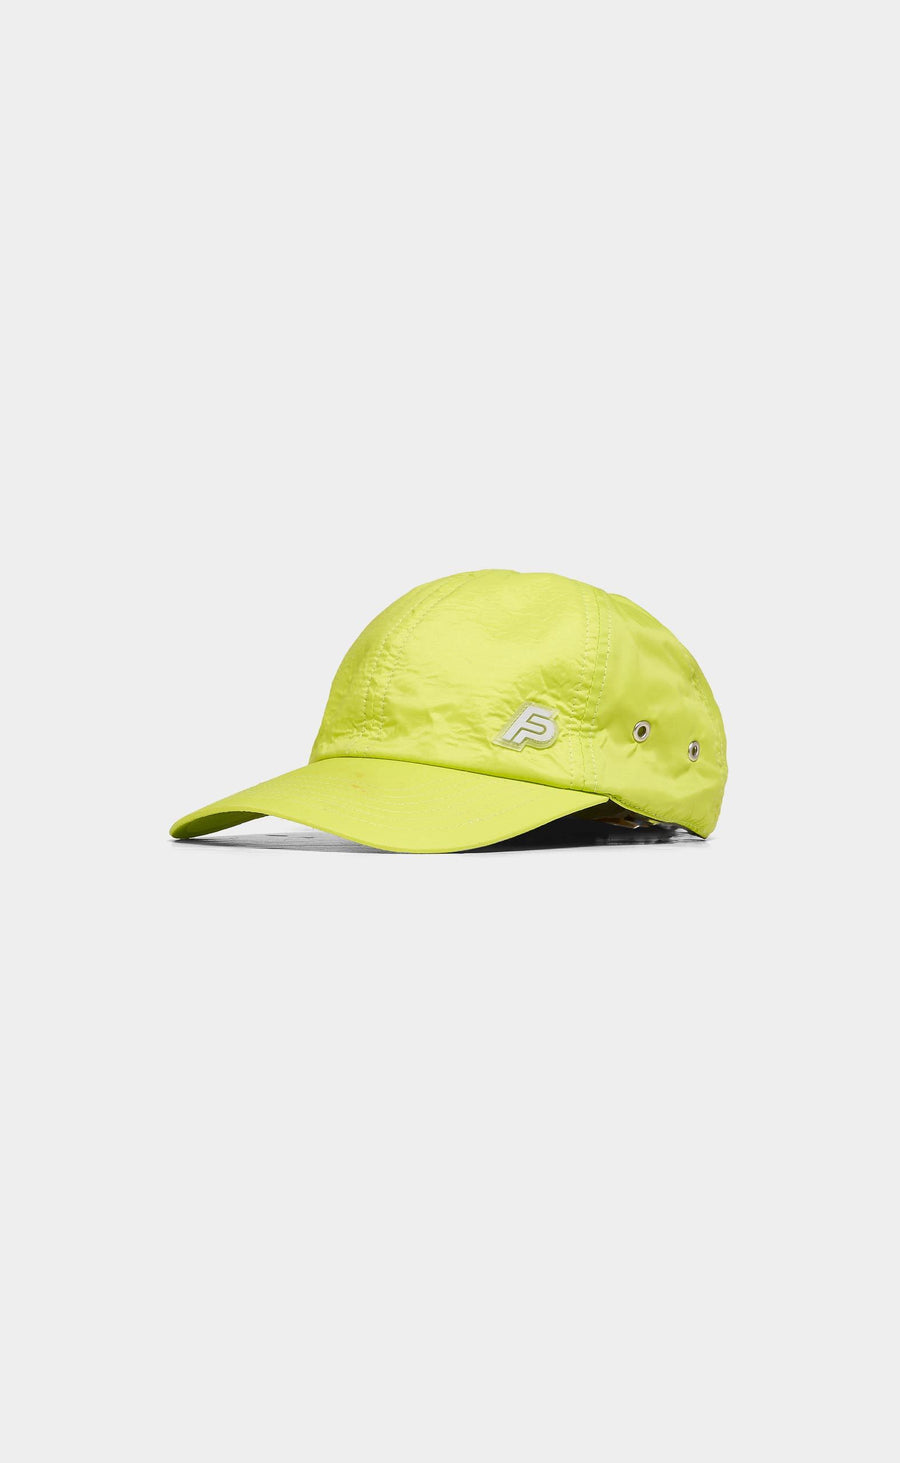 Cap Lime - men